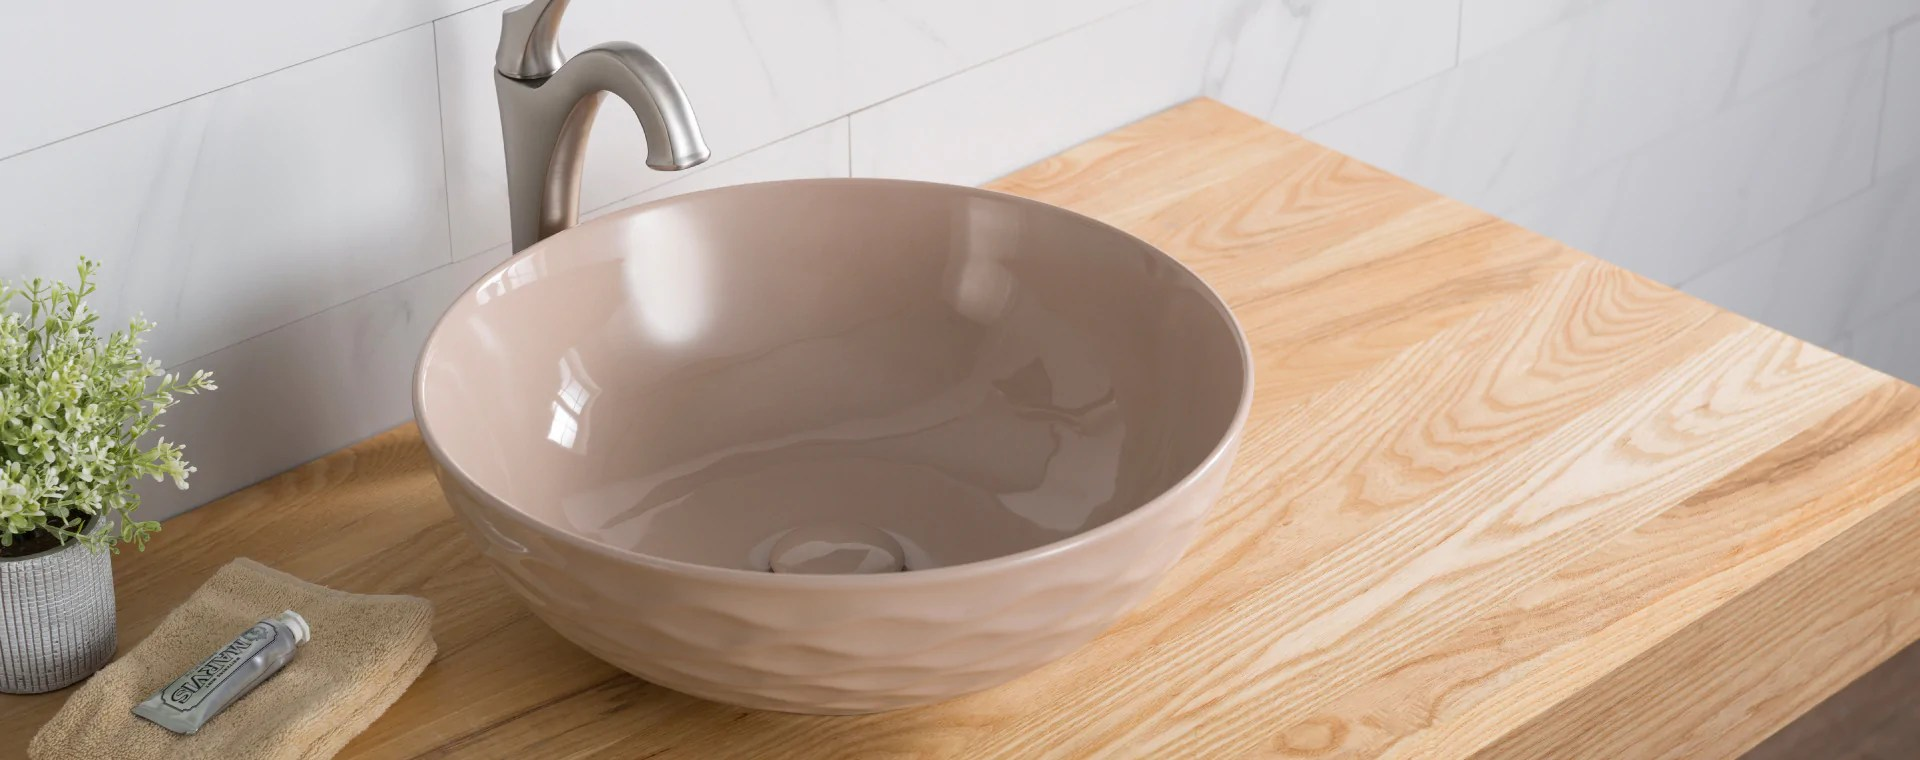 above counter vessel sinks